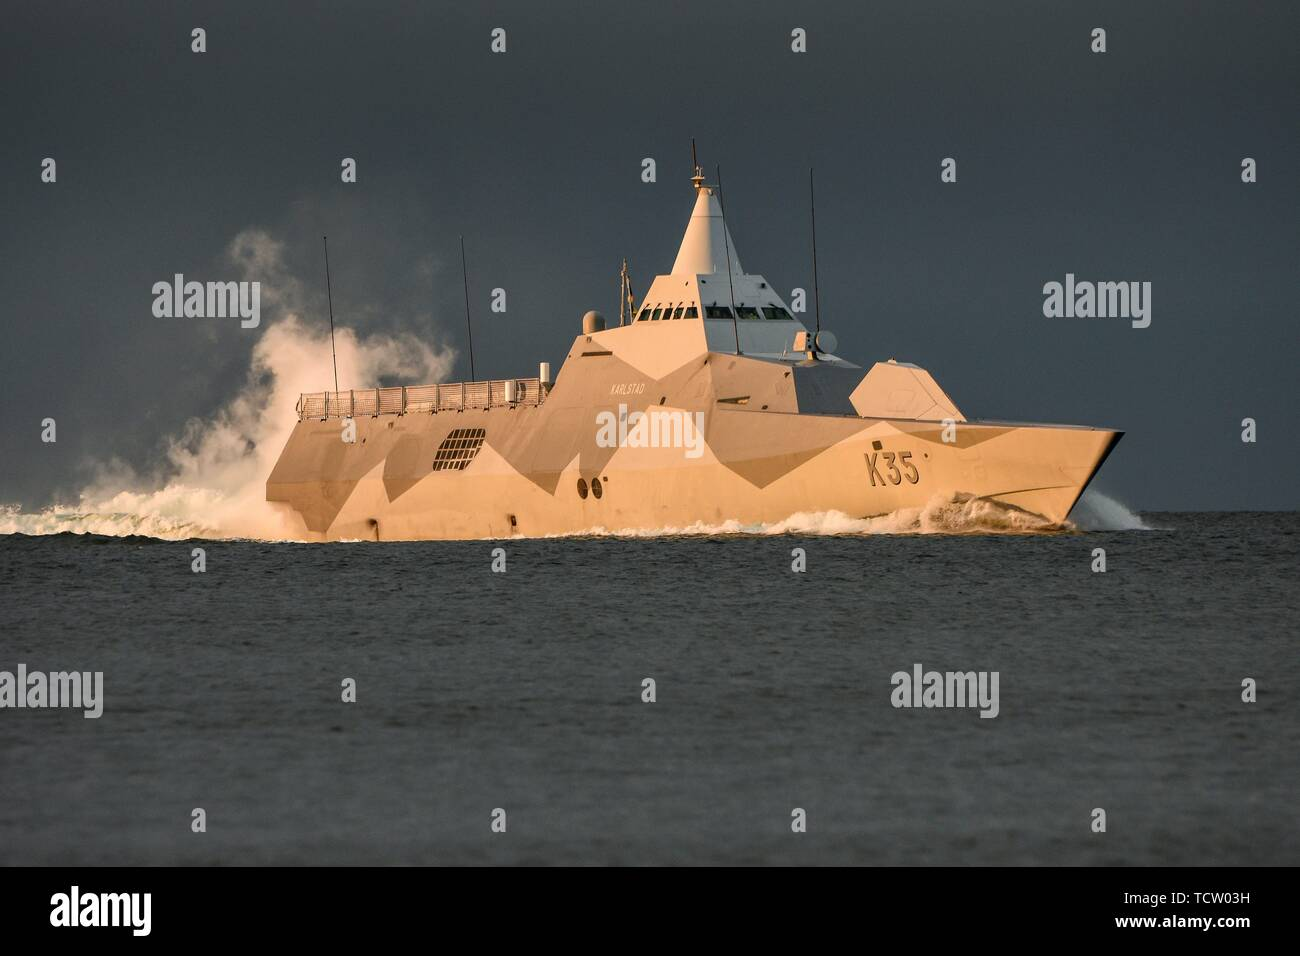 Keel, Deutschland. 06th June, 2019. 06.06.2019, the Corvette K35 Karlstad of the Swedish Navy in the evening sunlight when entering the Kiel Forde. The stealth ship participates in the NATO maneuver BALTOPS. The Visby class corvettes are among the world's first stealthy design stealth aircraft. Its water jet propulsion system has a maximum speed of 35 knots (65 km/h). | usage worldwide Credit: dpa/Alamy Live News - Stock Image